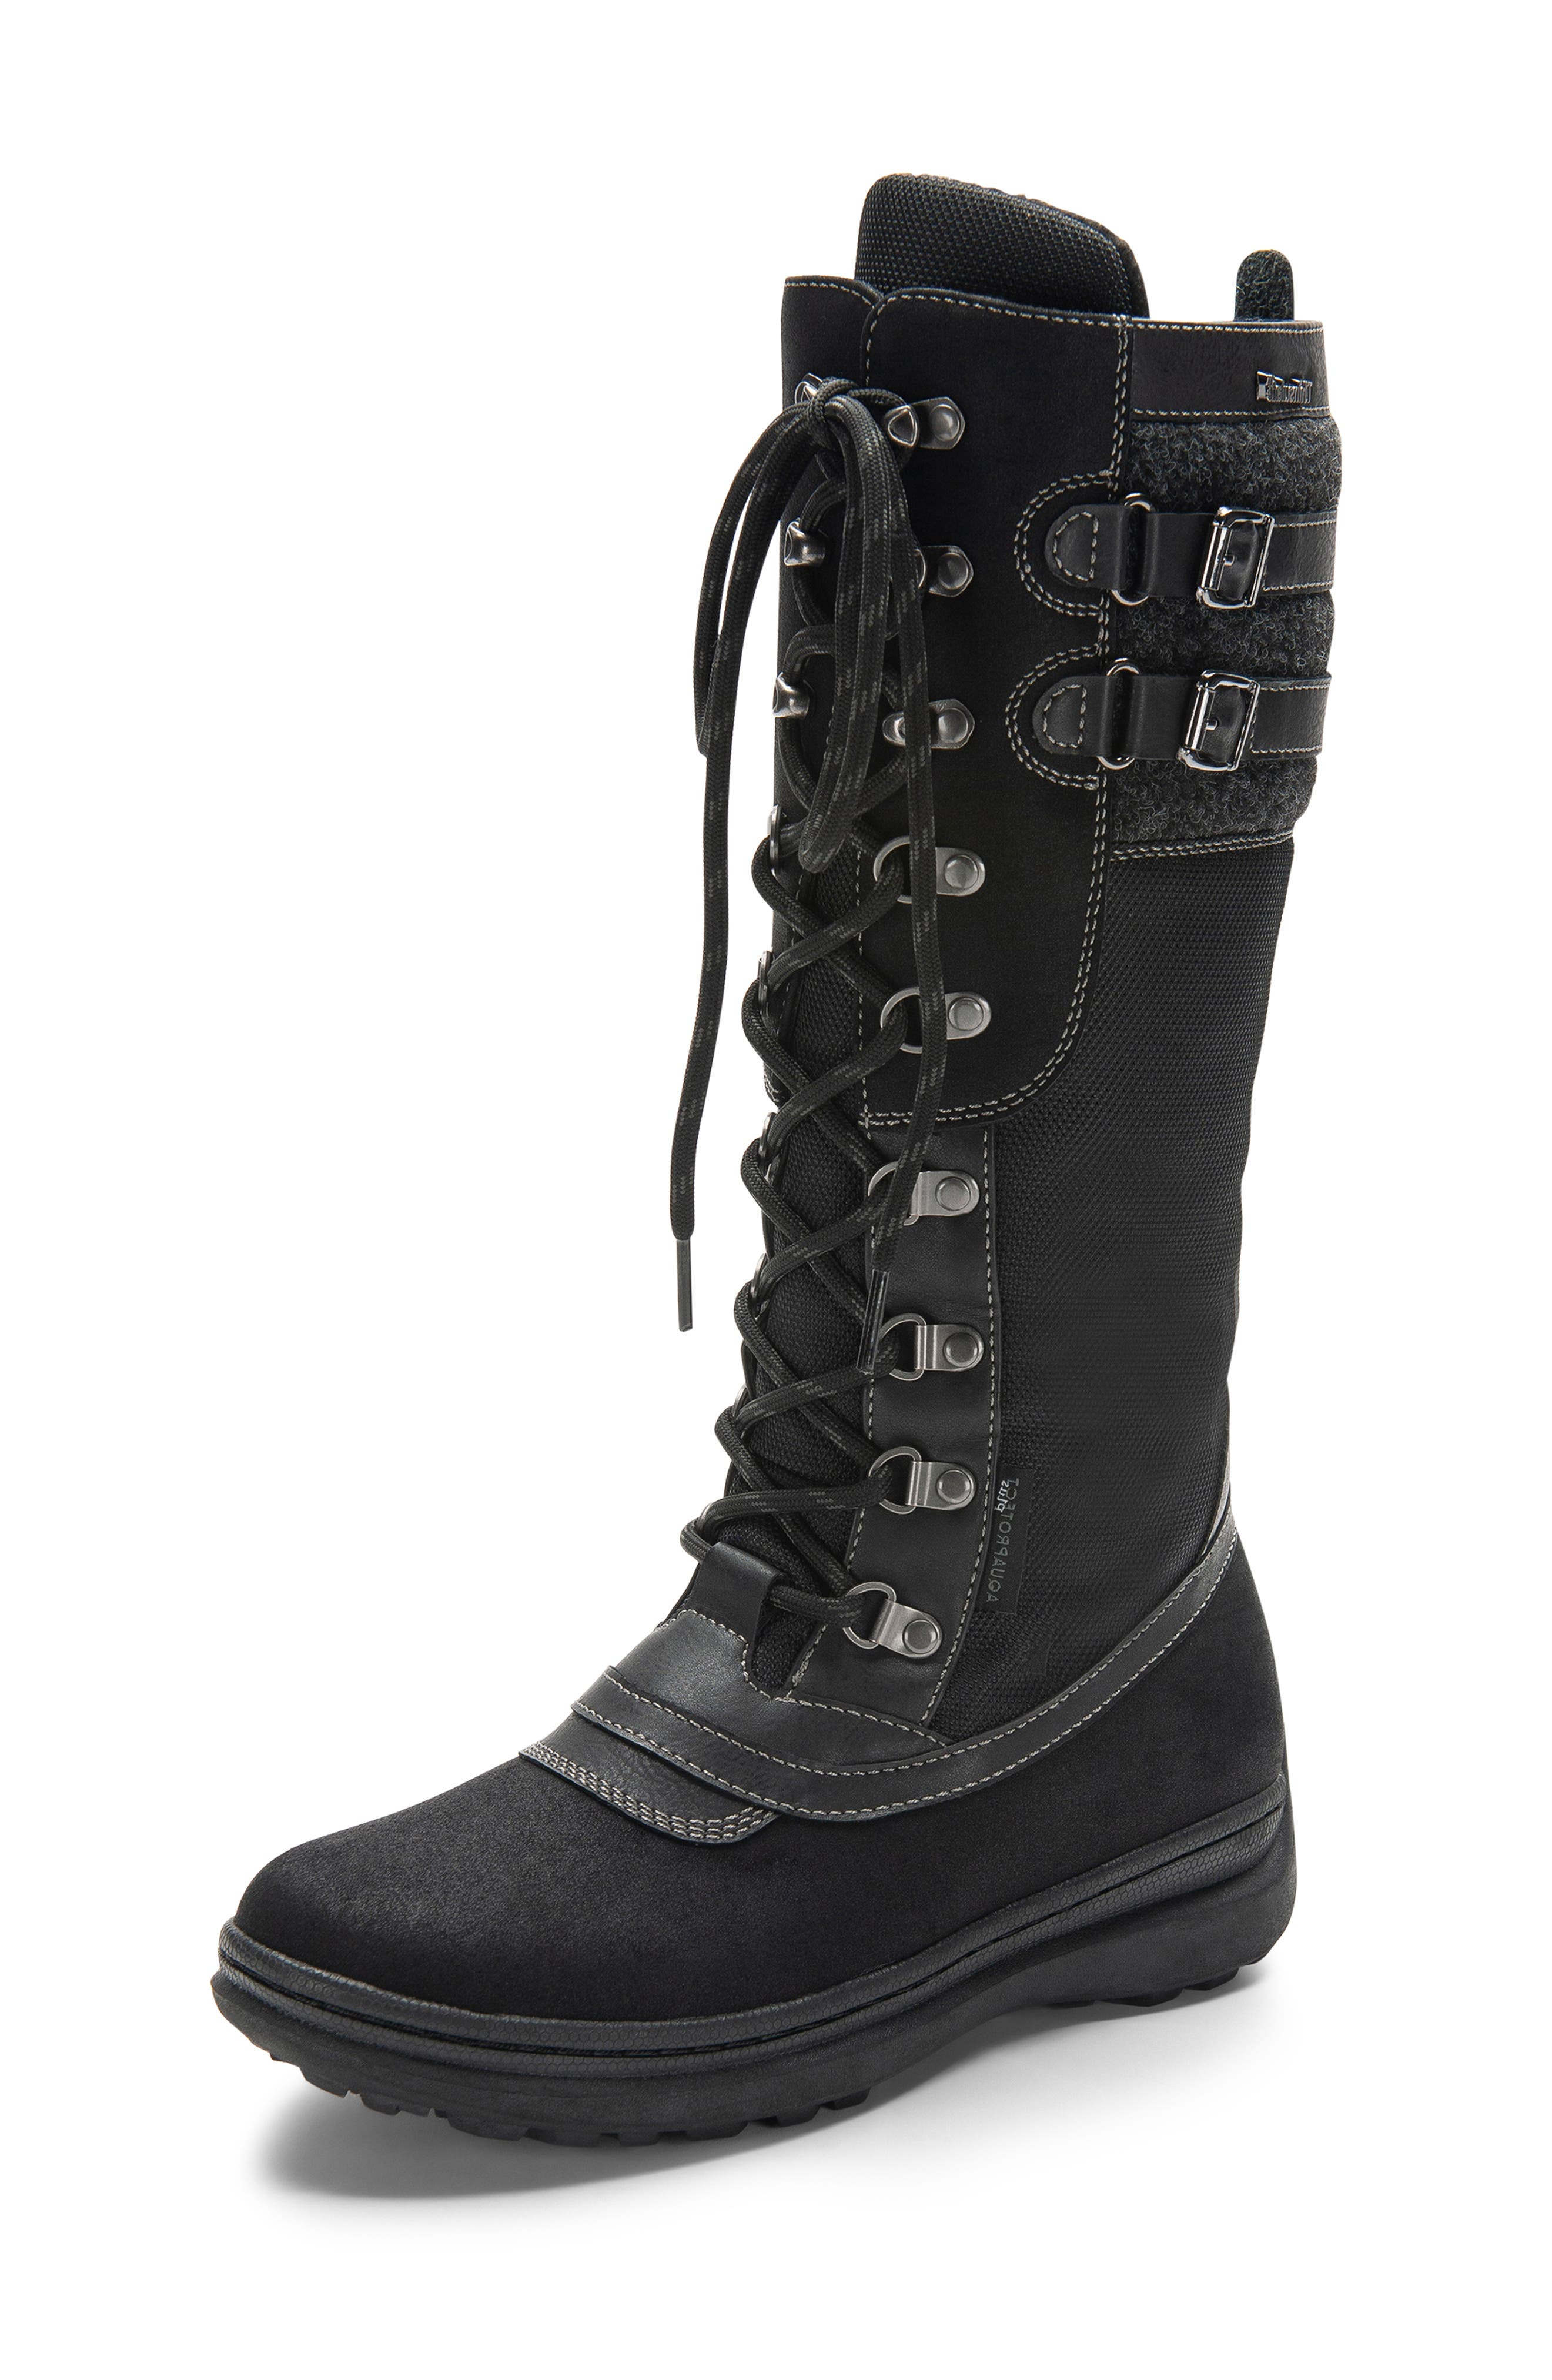 India Waterproof Snow Boot,                             Alternate thumbnail 7, color,                             BLACK LEATHER